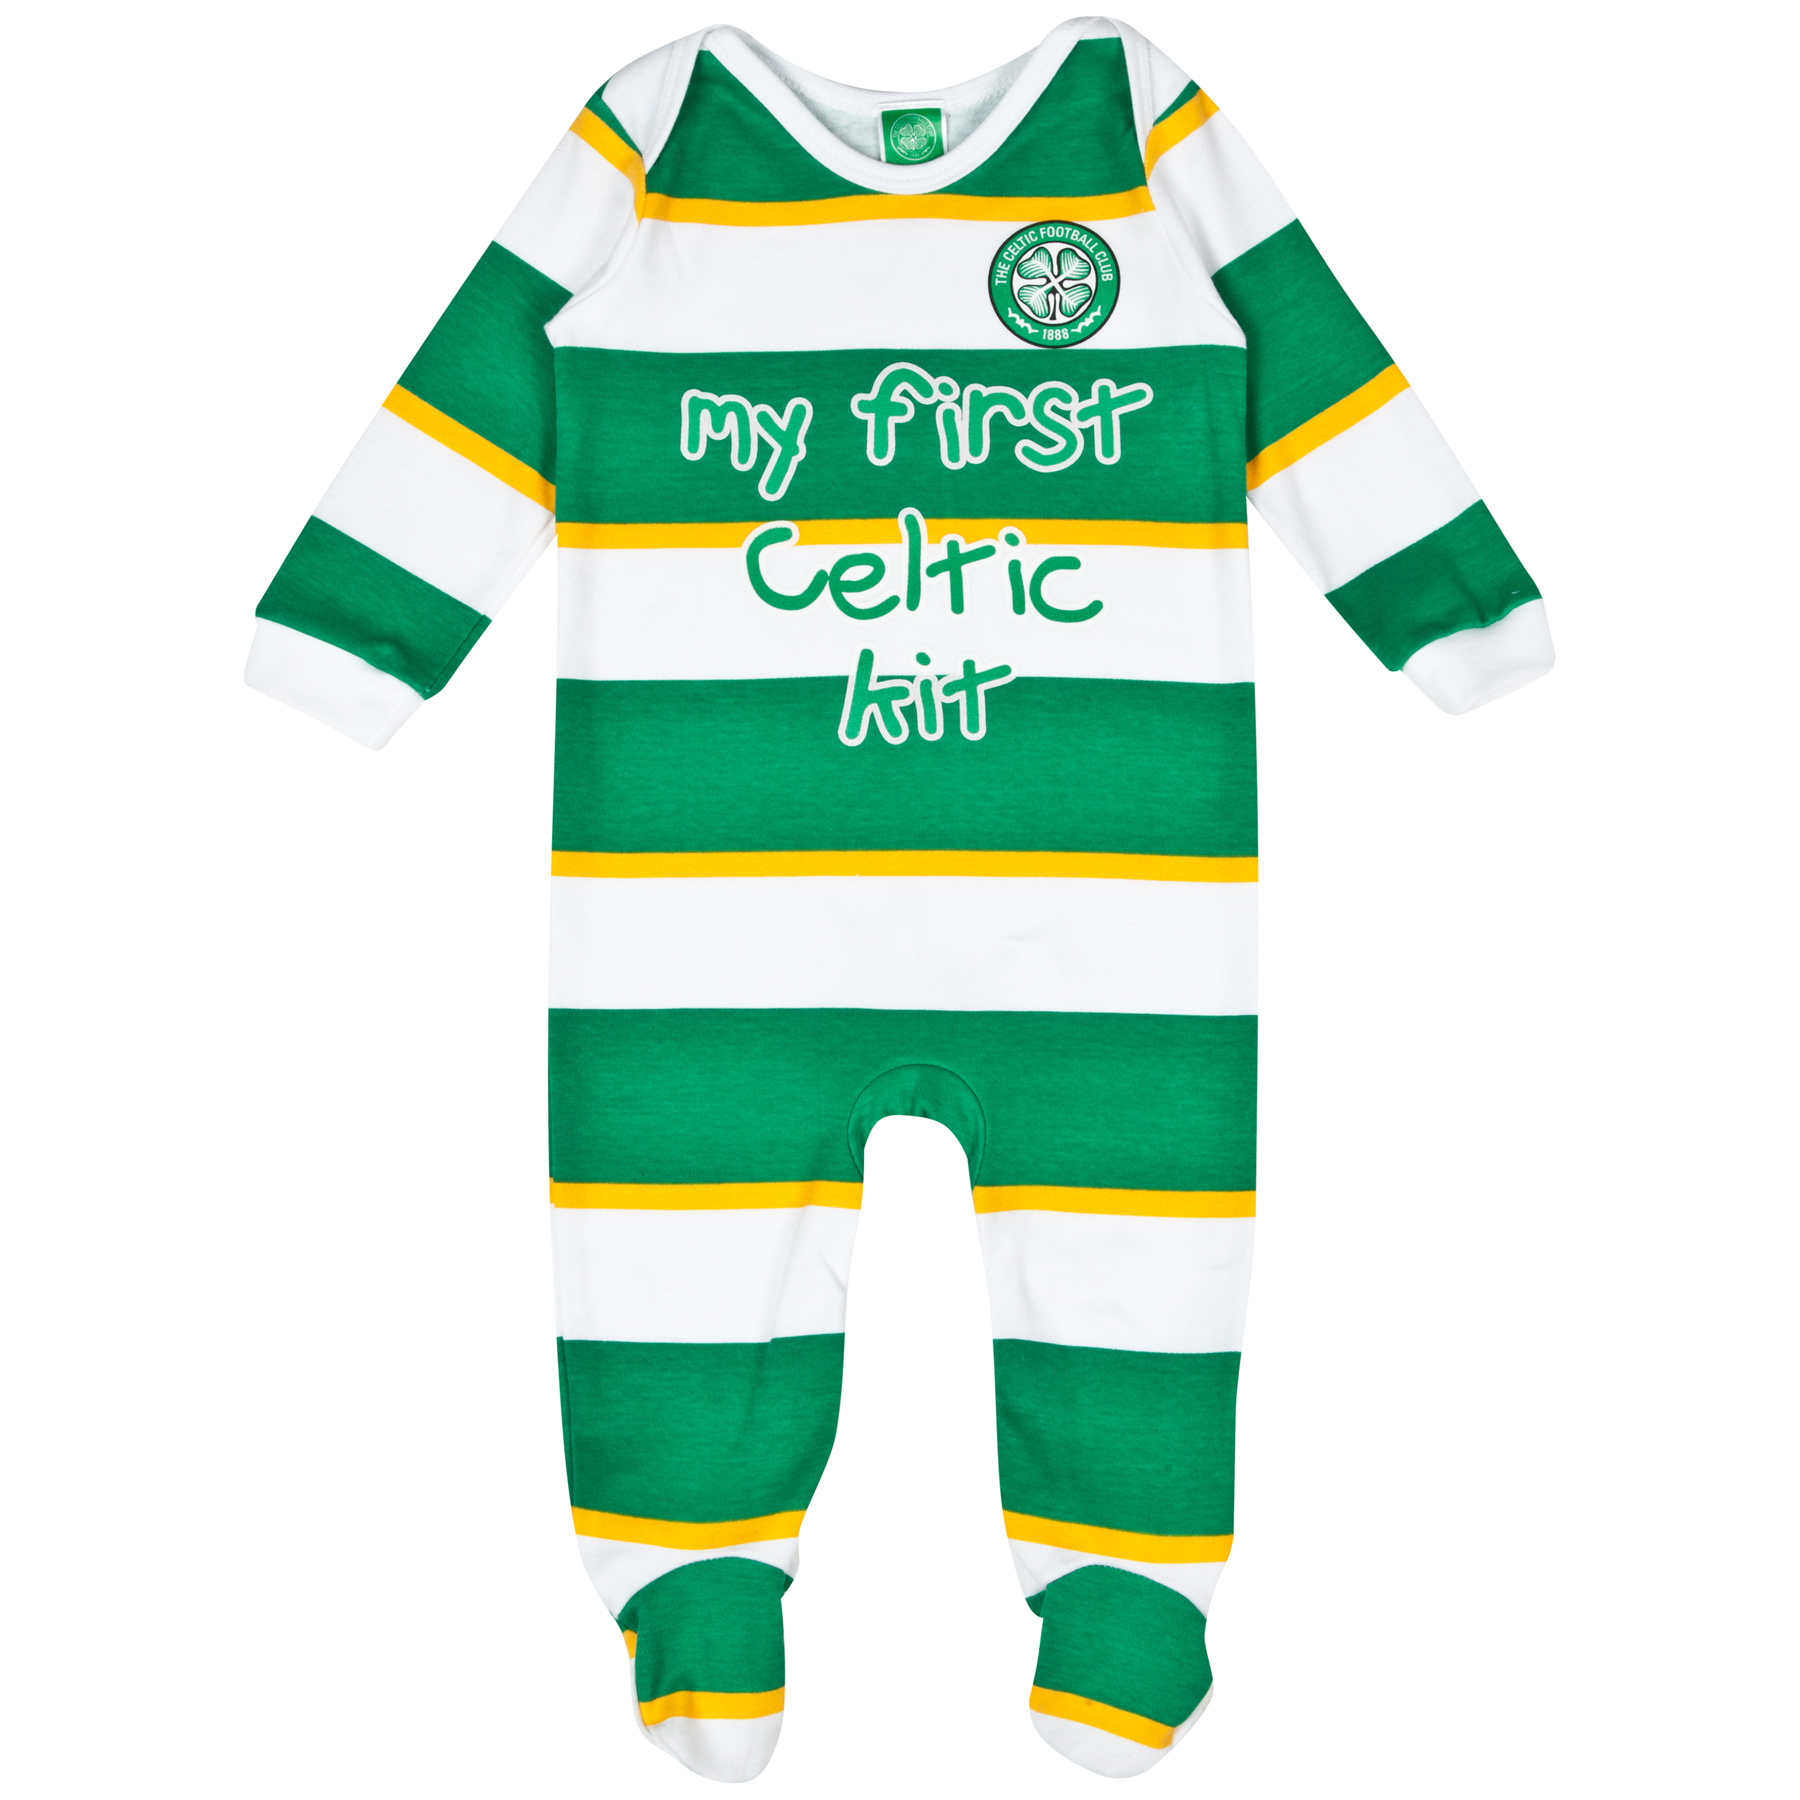 Celtic My First Sleepsuit - Green/White/Gold - Baby Boys